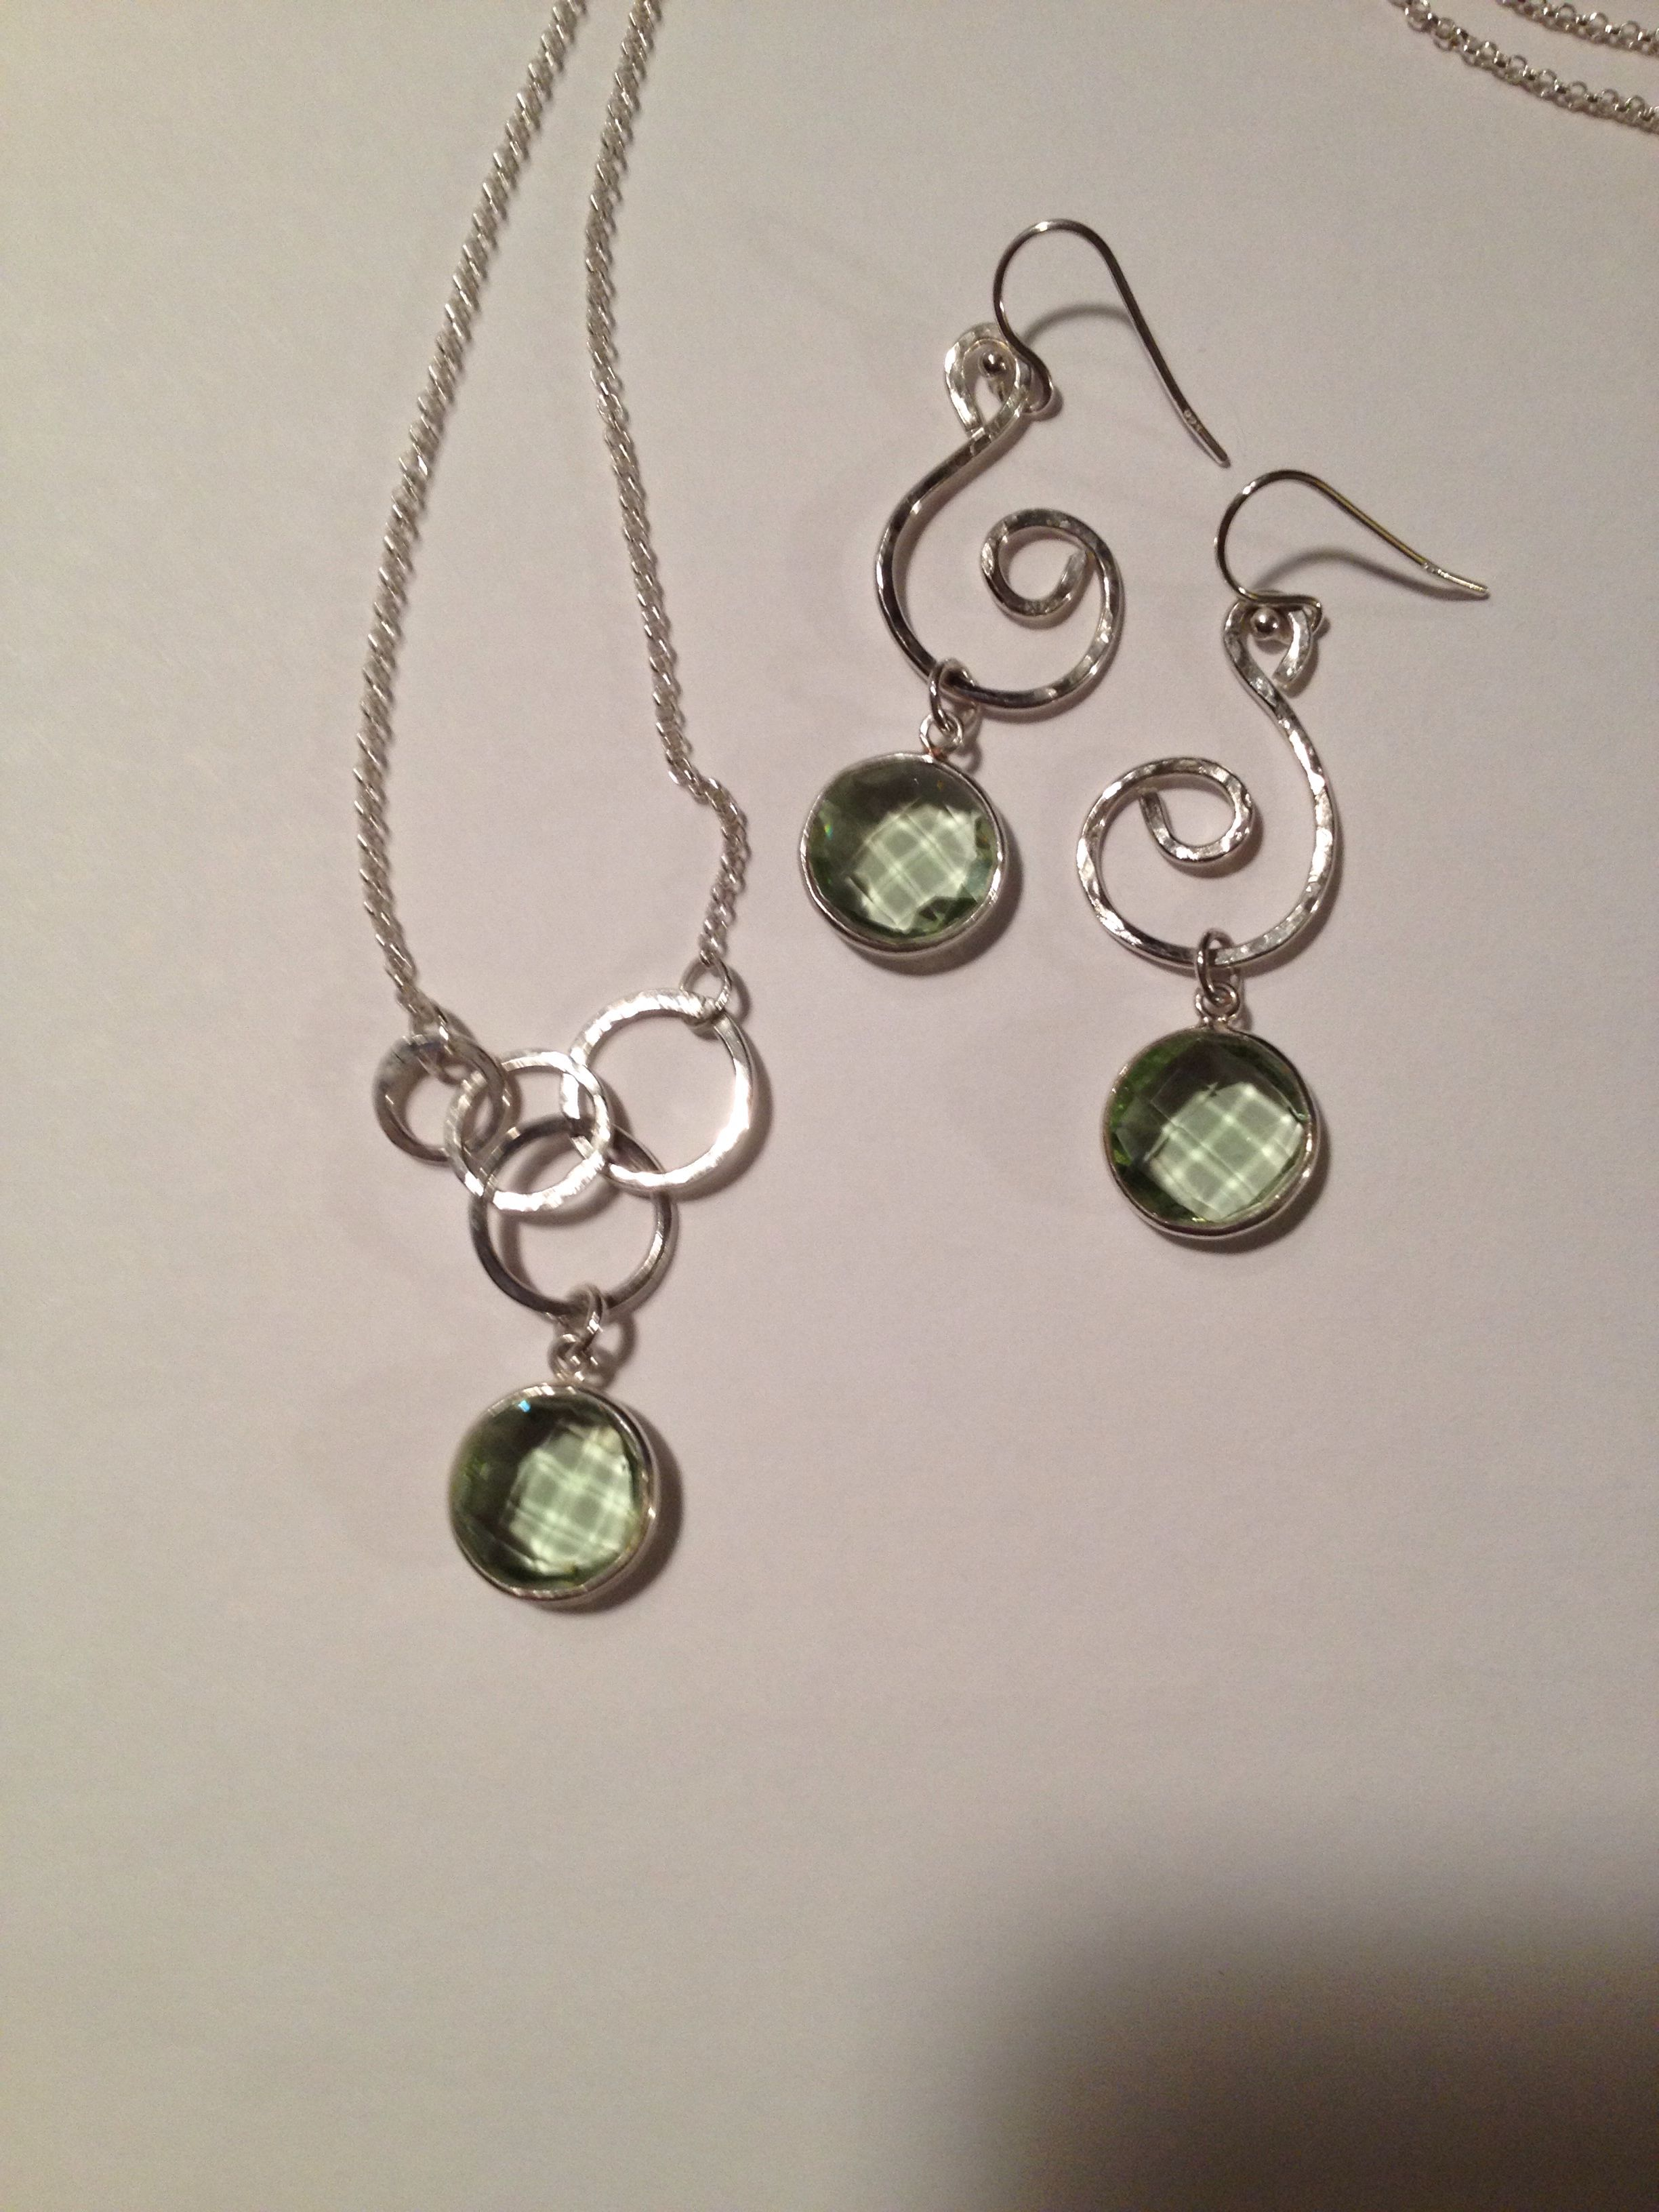 Green Amethyst and hammered sterling for sale now at Northwood Gallery in Midland, Michigan!